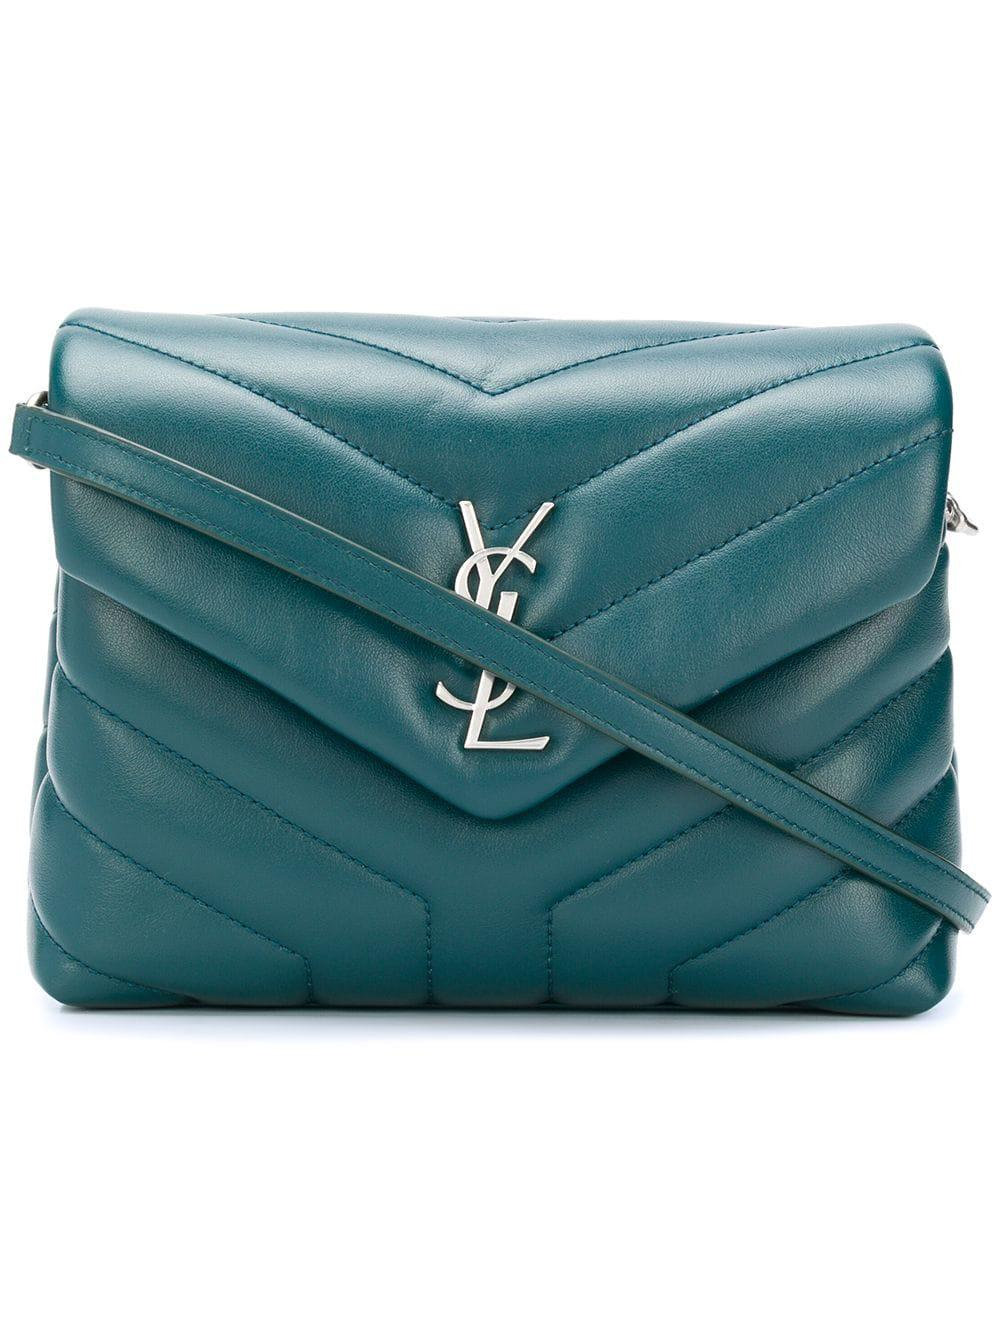 abf31a1e5a Saint Laurent Monogram Leather Shoulder Bag in Green - Lyst